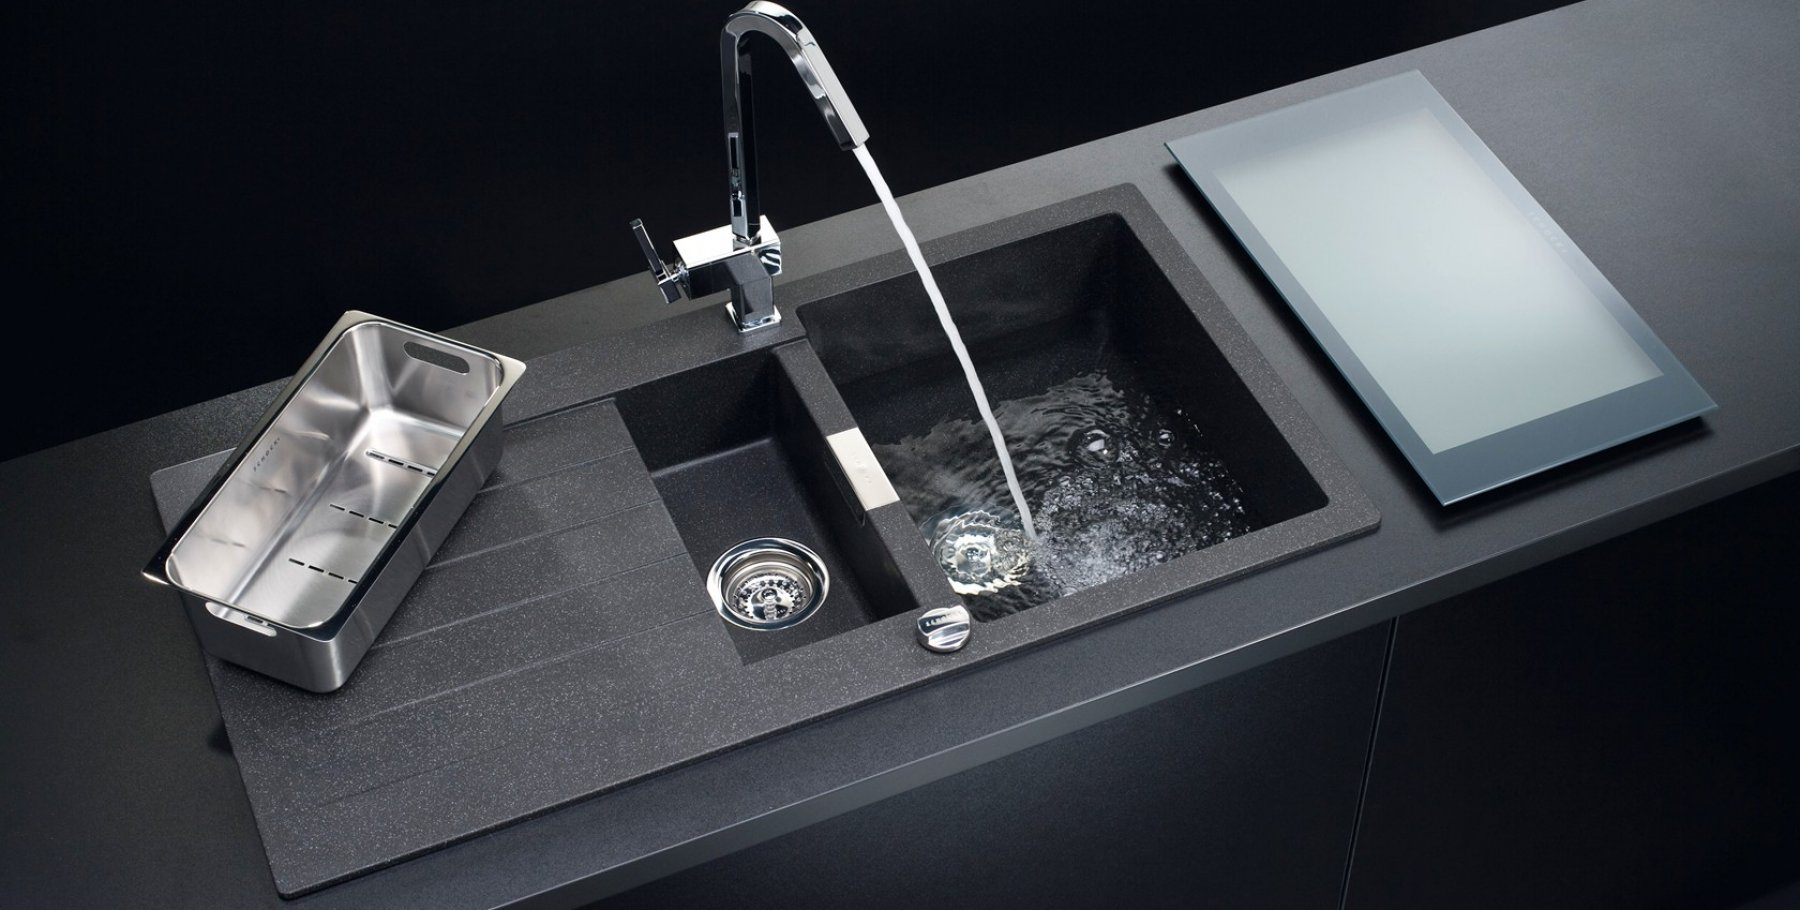 Egmont 1000 15 Sink By Schock By Archant